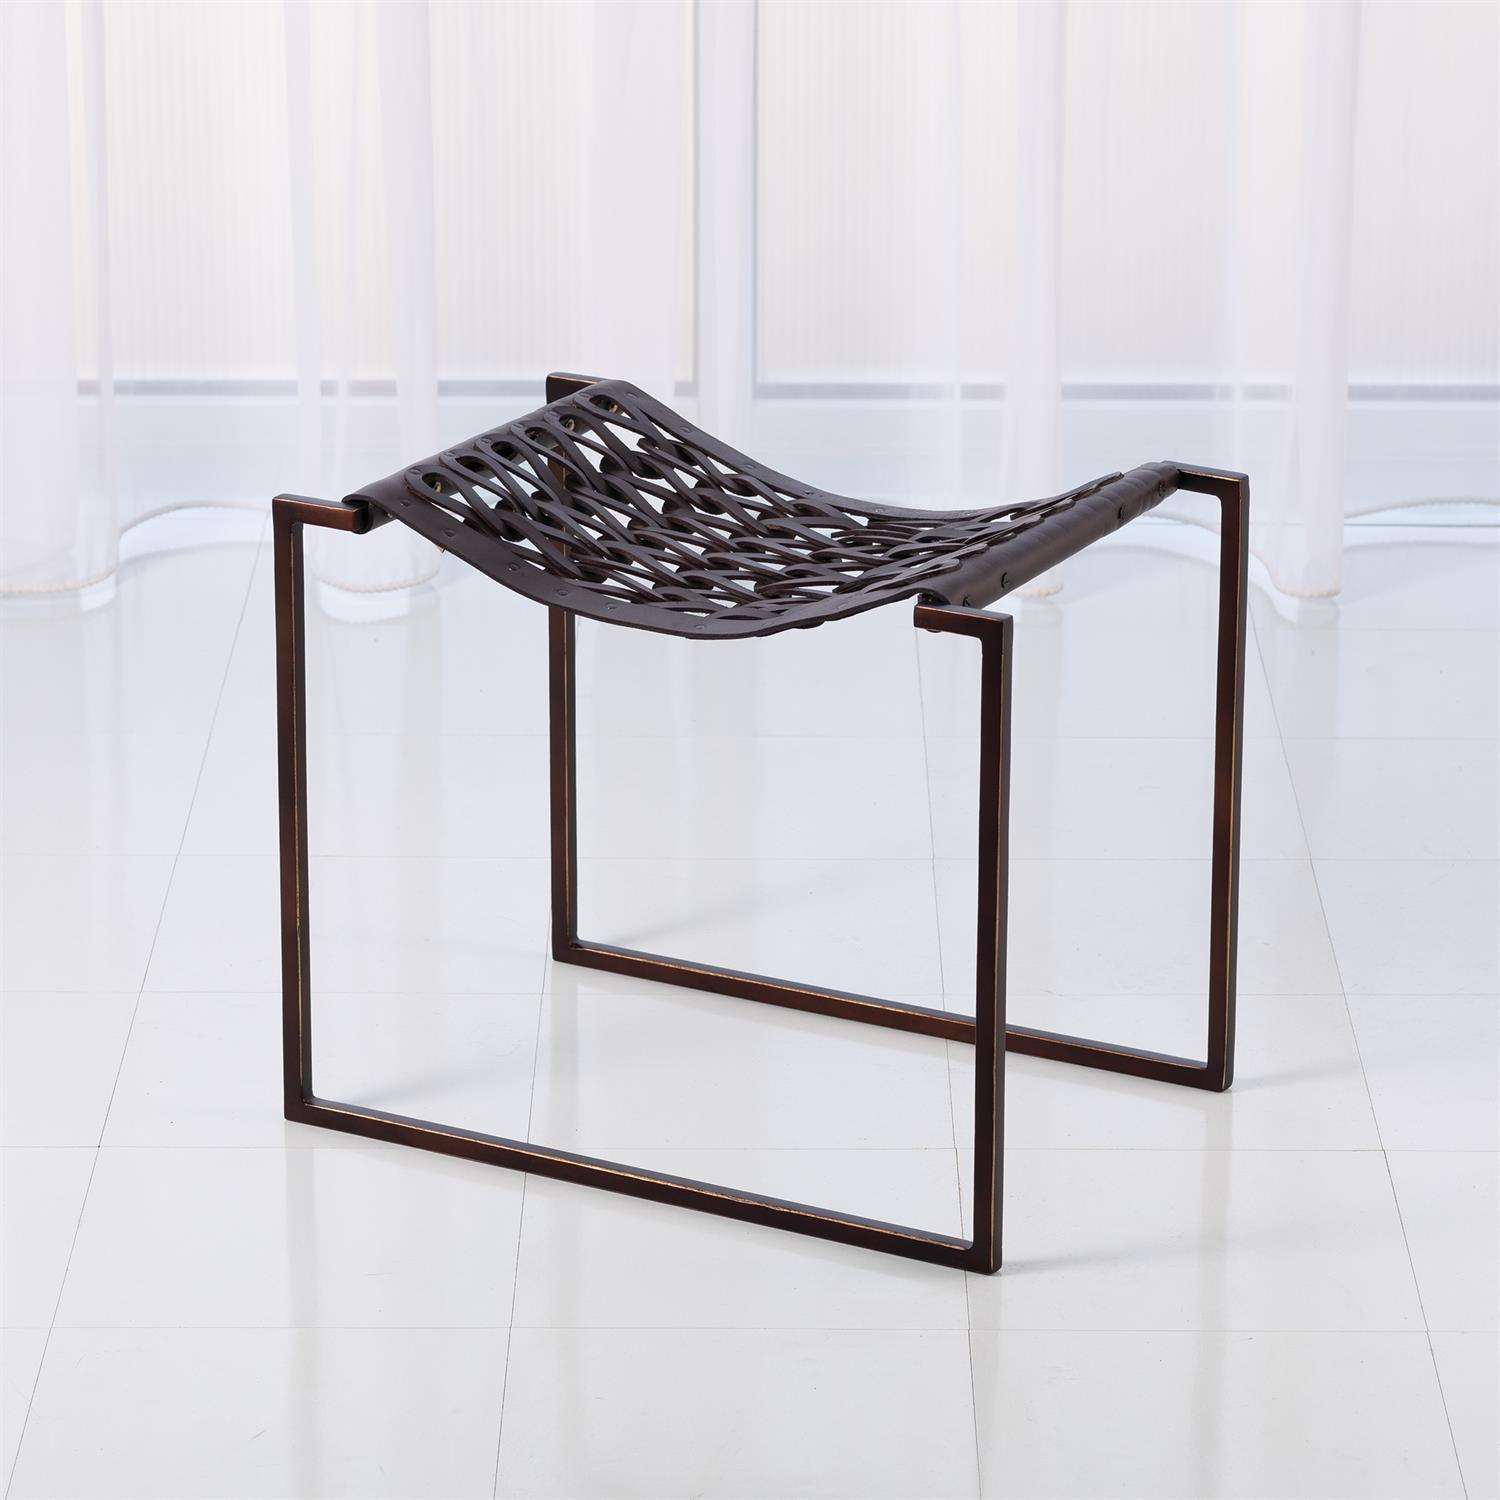 Global Views Global Views Knit & Pearl Stool - Bronze & Brown JG9.90003